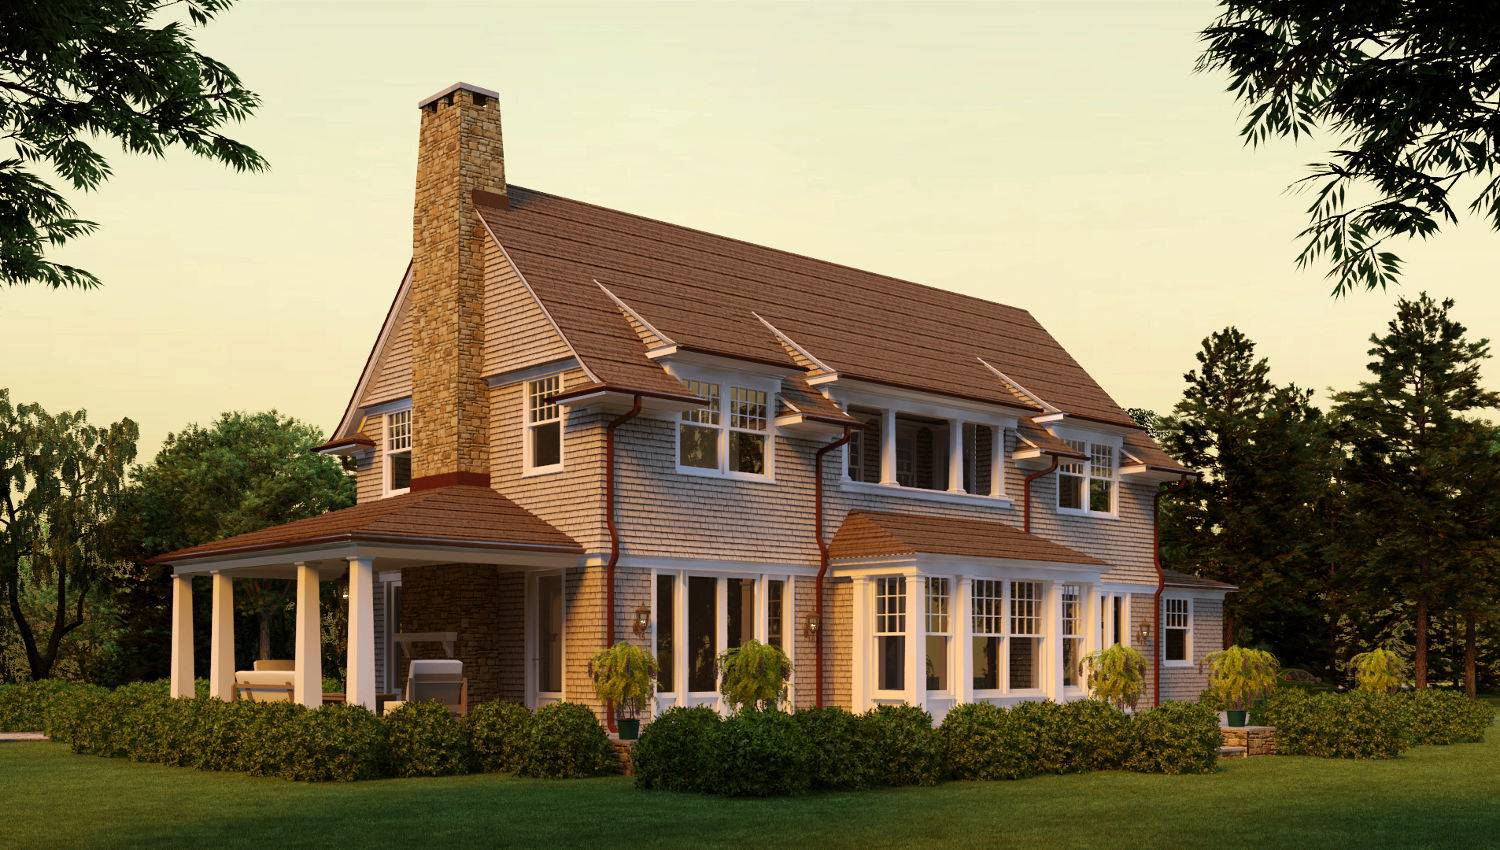 Lewey Lake Shingle Style Home Plans David Neff Architect